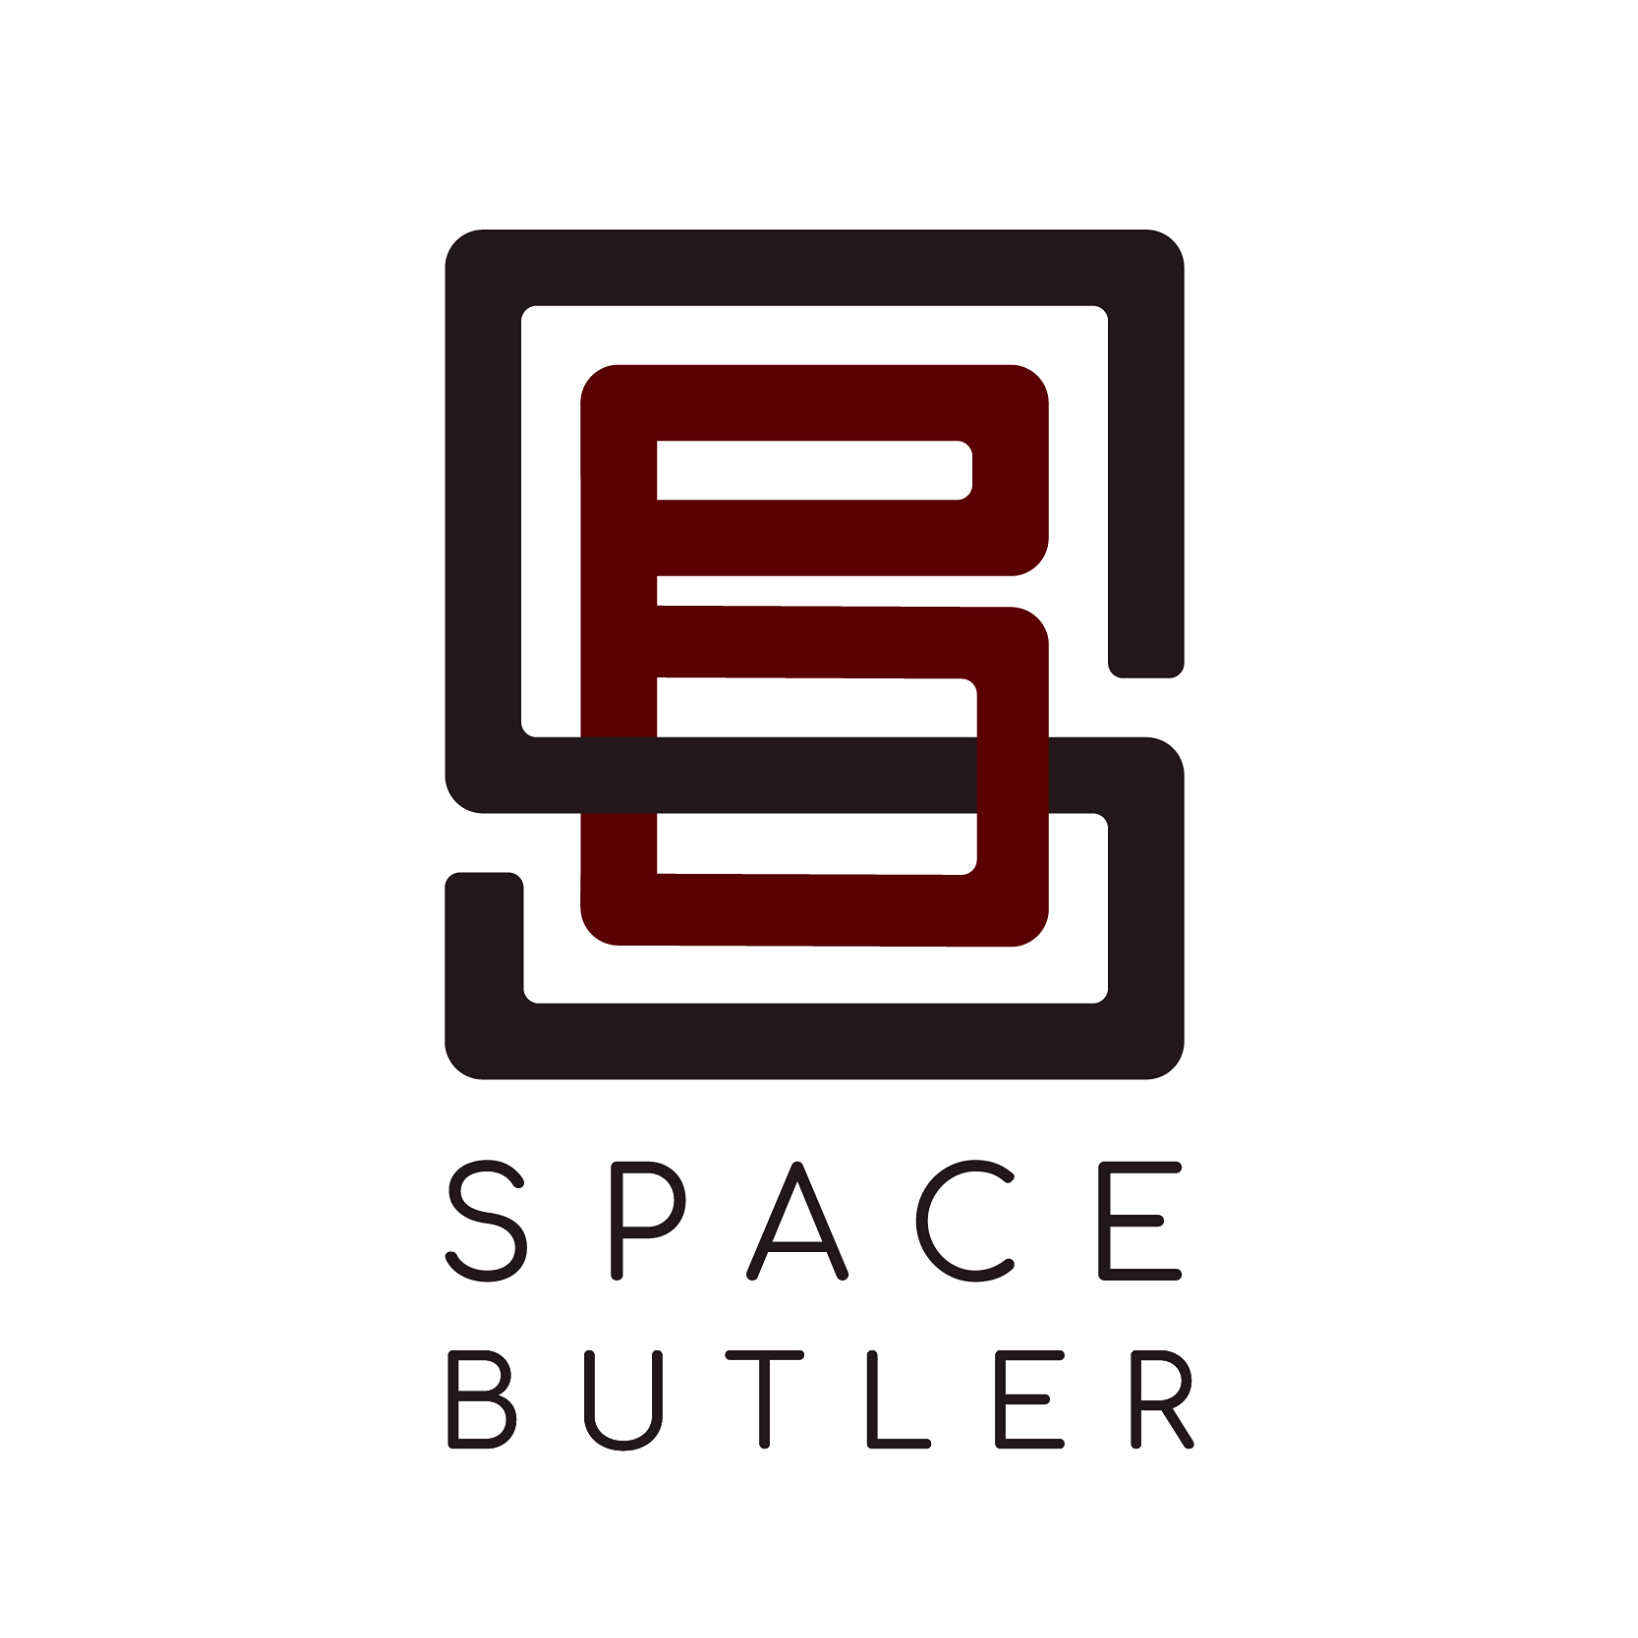 Space Butler - Coliving Company